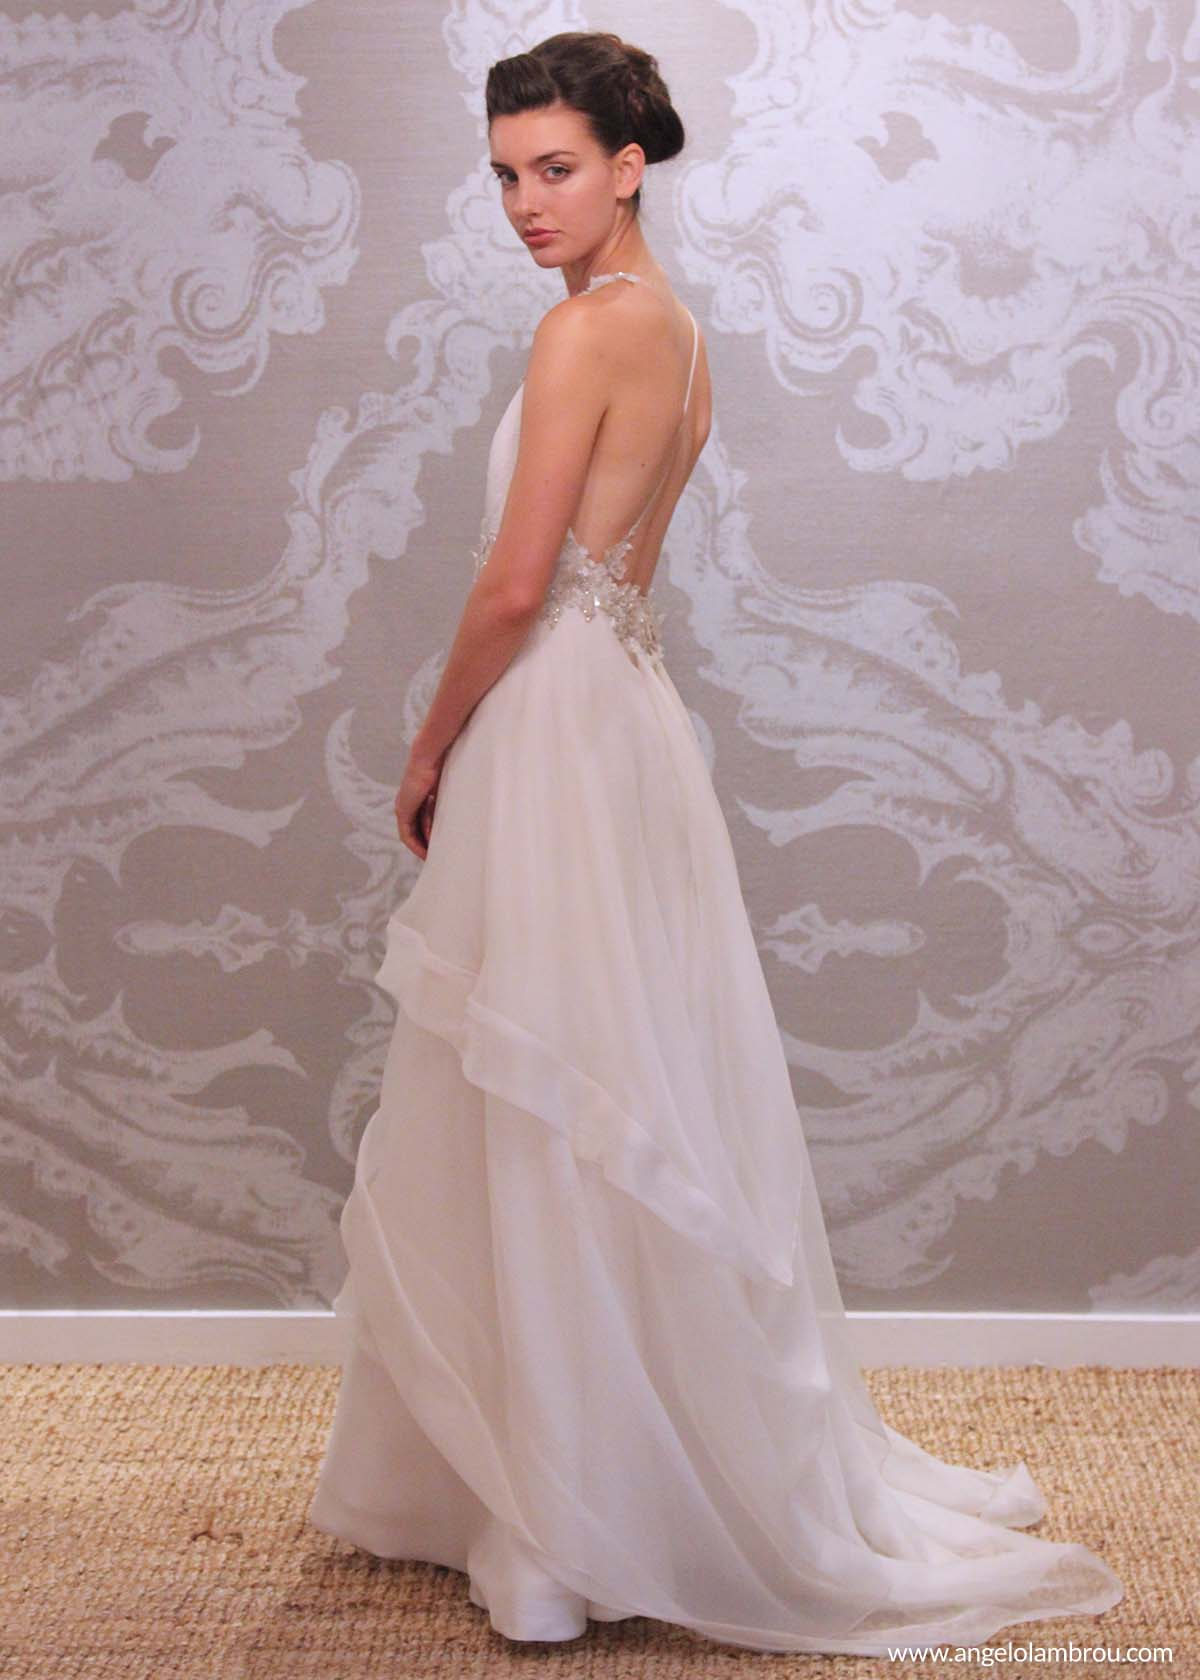 Unique Wedding Dresses Cheap In south Africa – Wedding